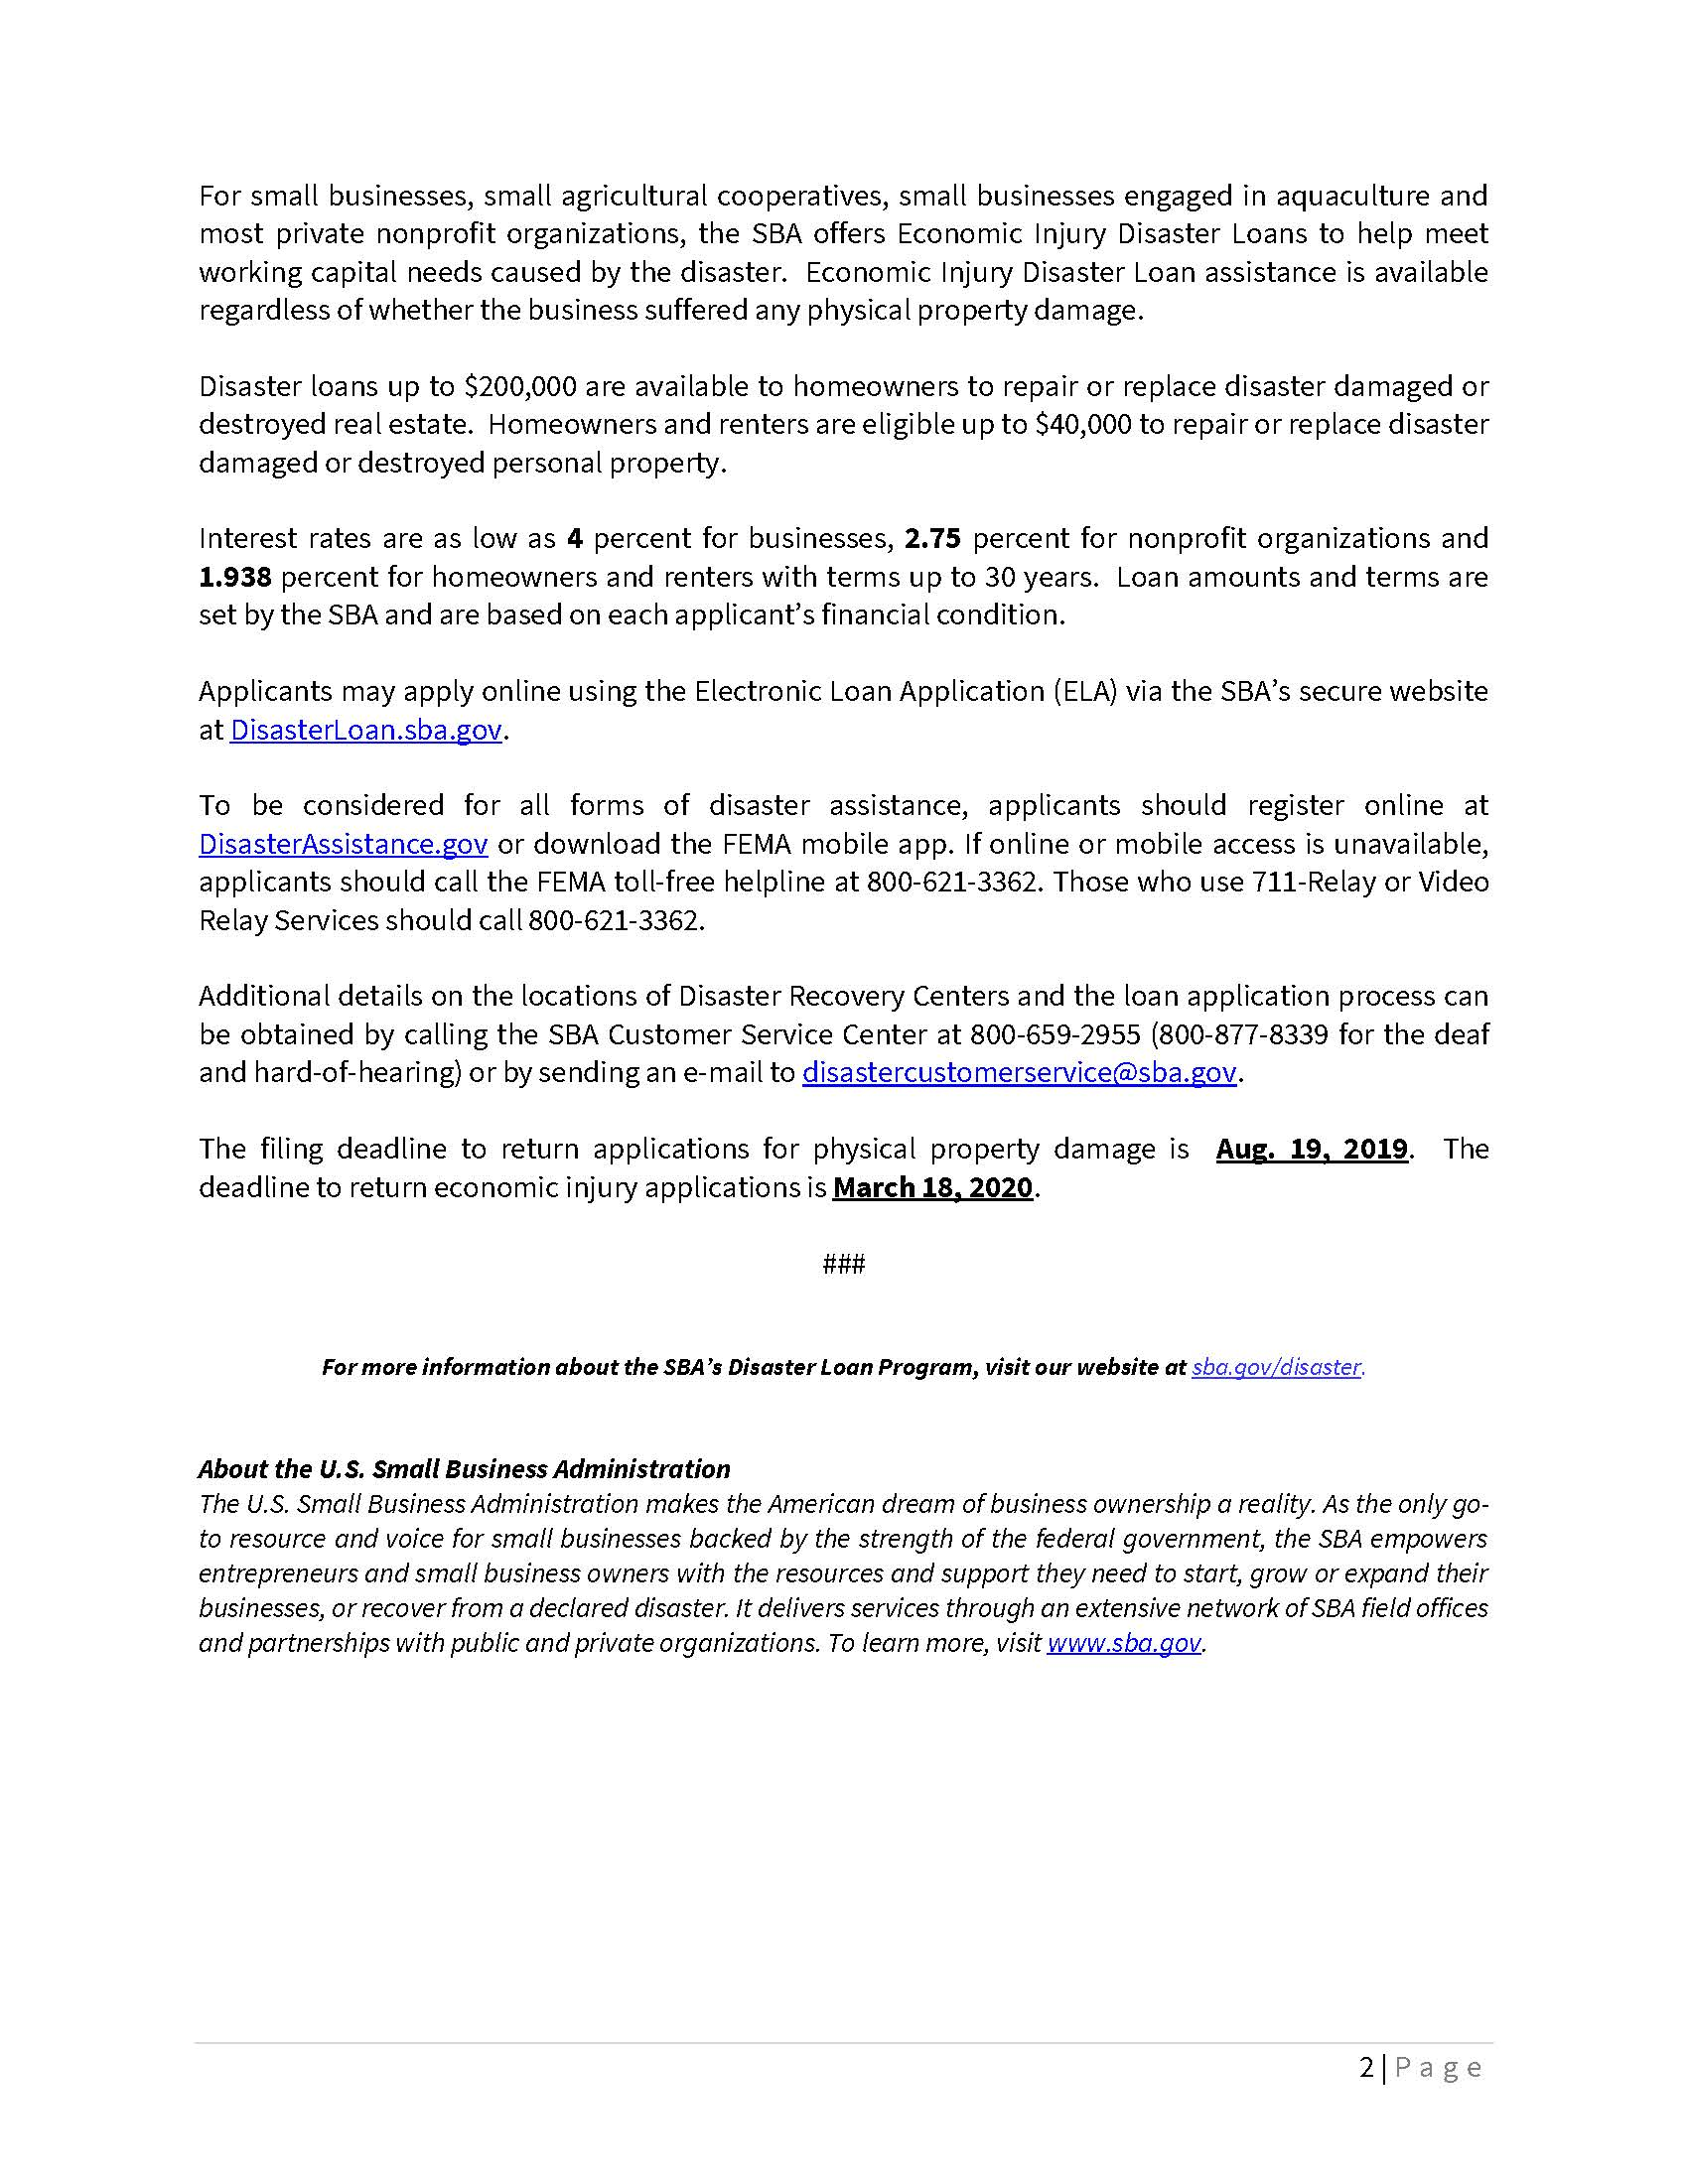 SBA Offers Disaster Assistance to OH Businesses and Residents Page 2